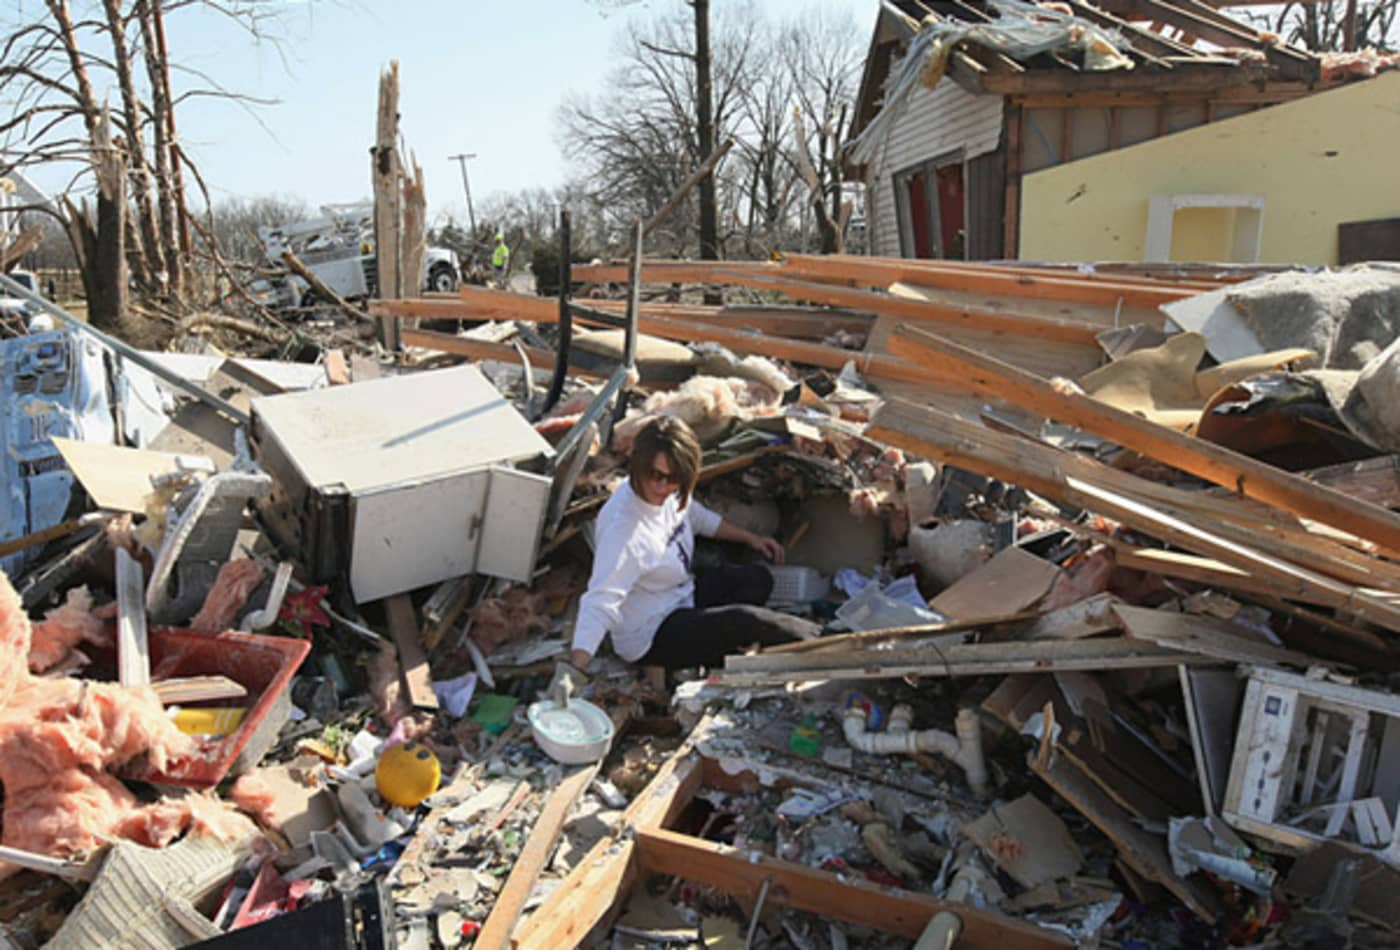 scenes-from-the-midwest-tornadoes-harrisburg.jpg